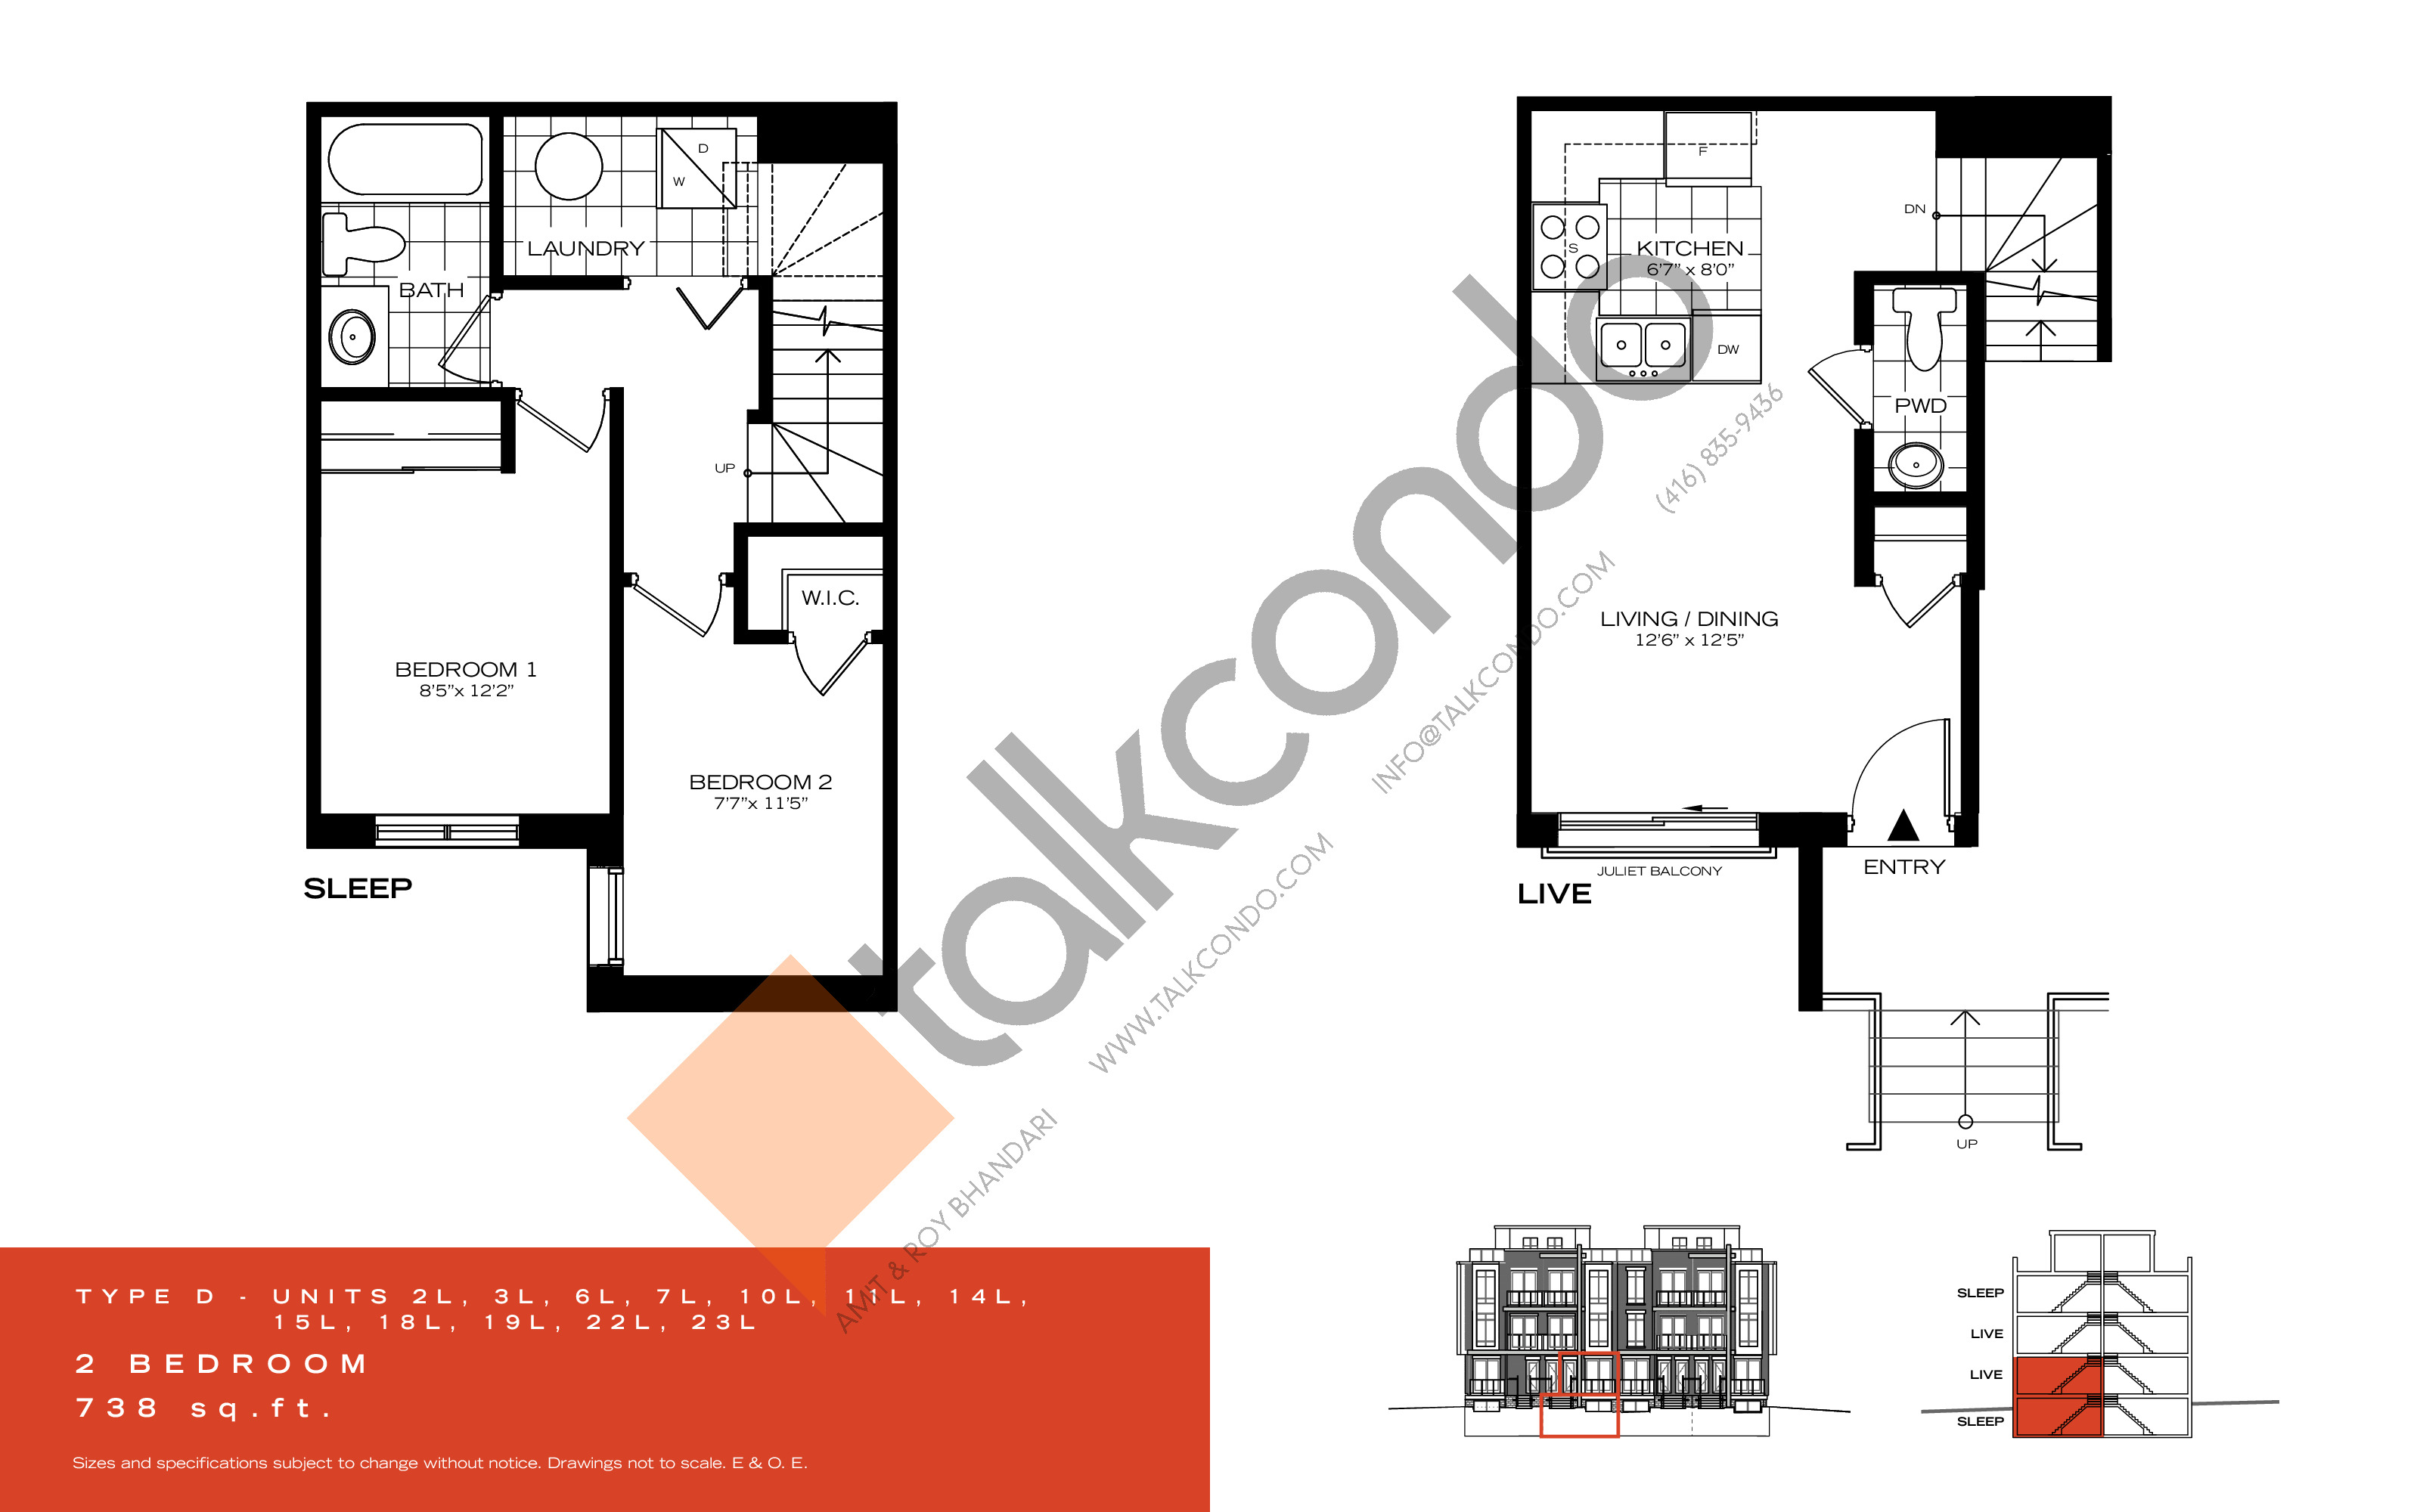 Type D Floor Plan at Wycliffe at the Promenade - 738 sq.ft